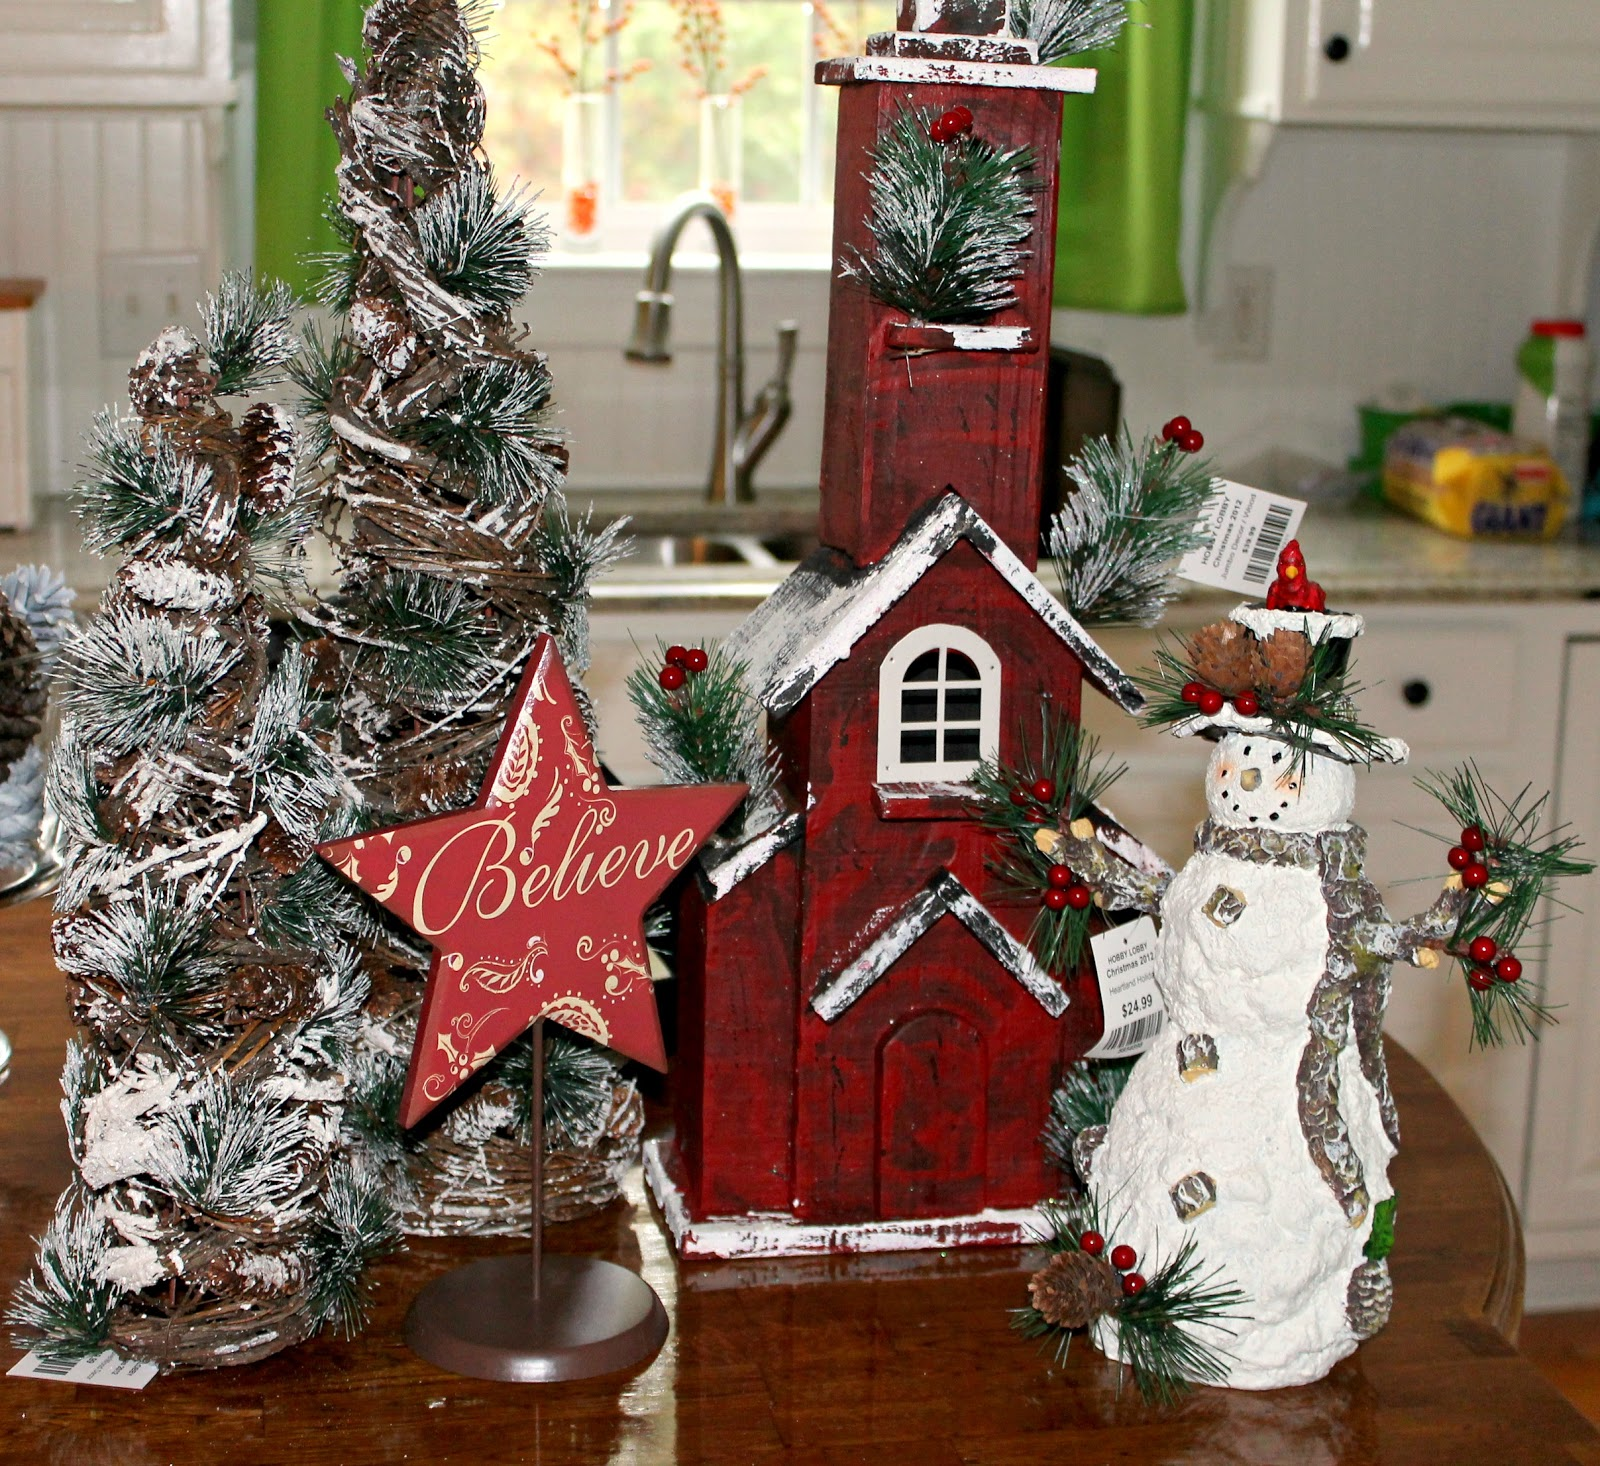 hobby lobby christmas decorations | www.indiepedia.org